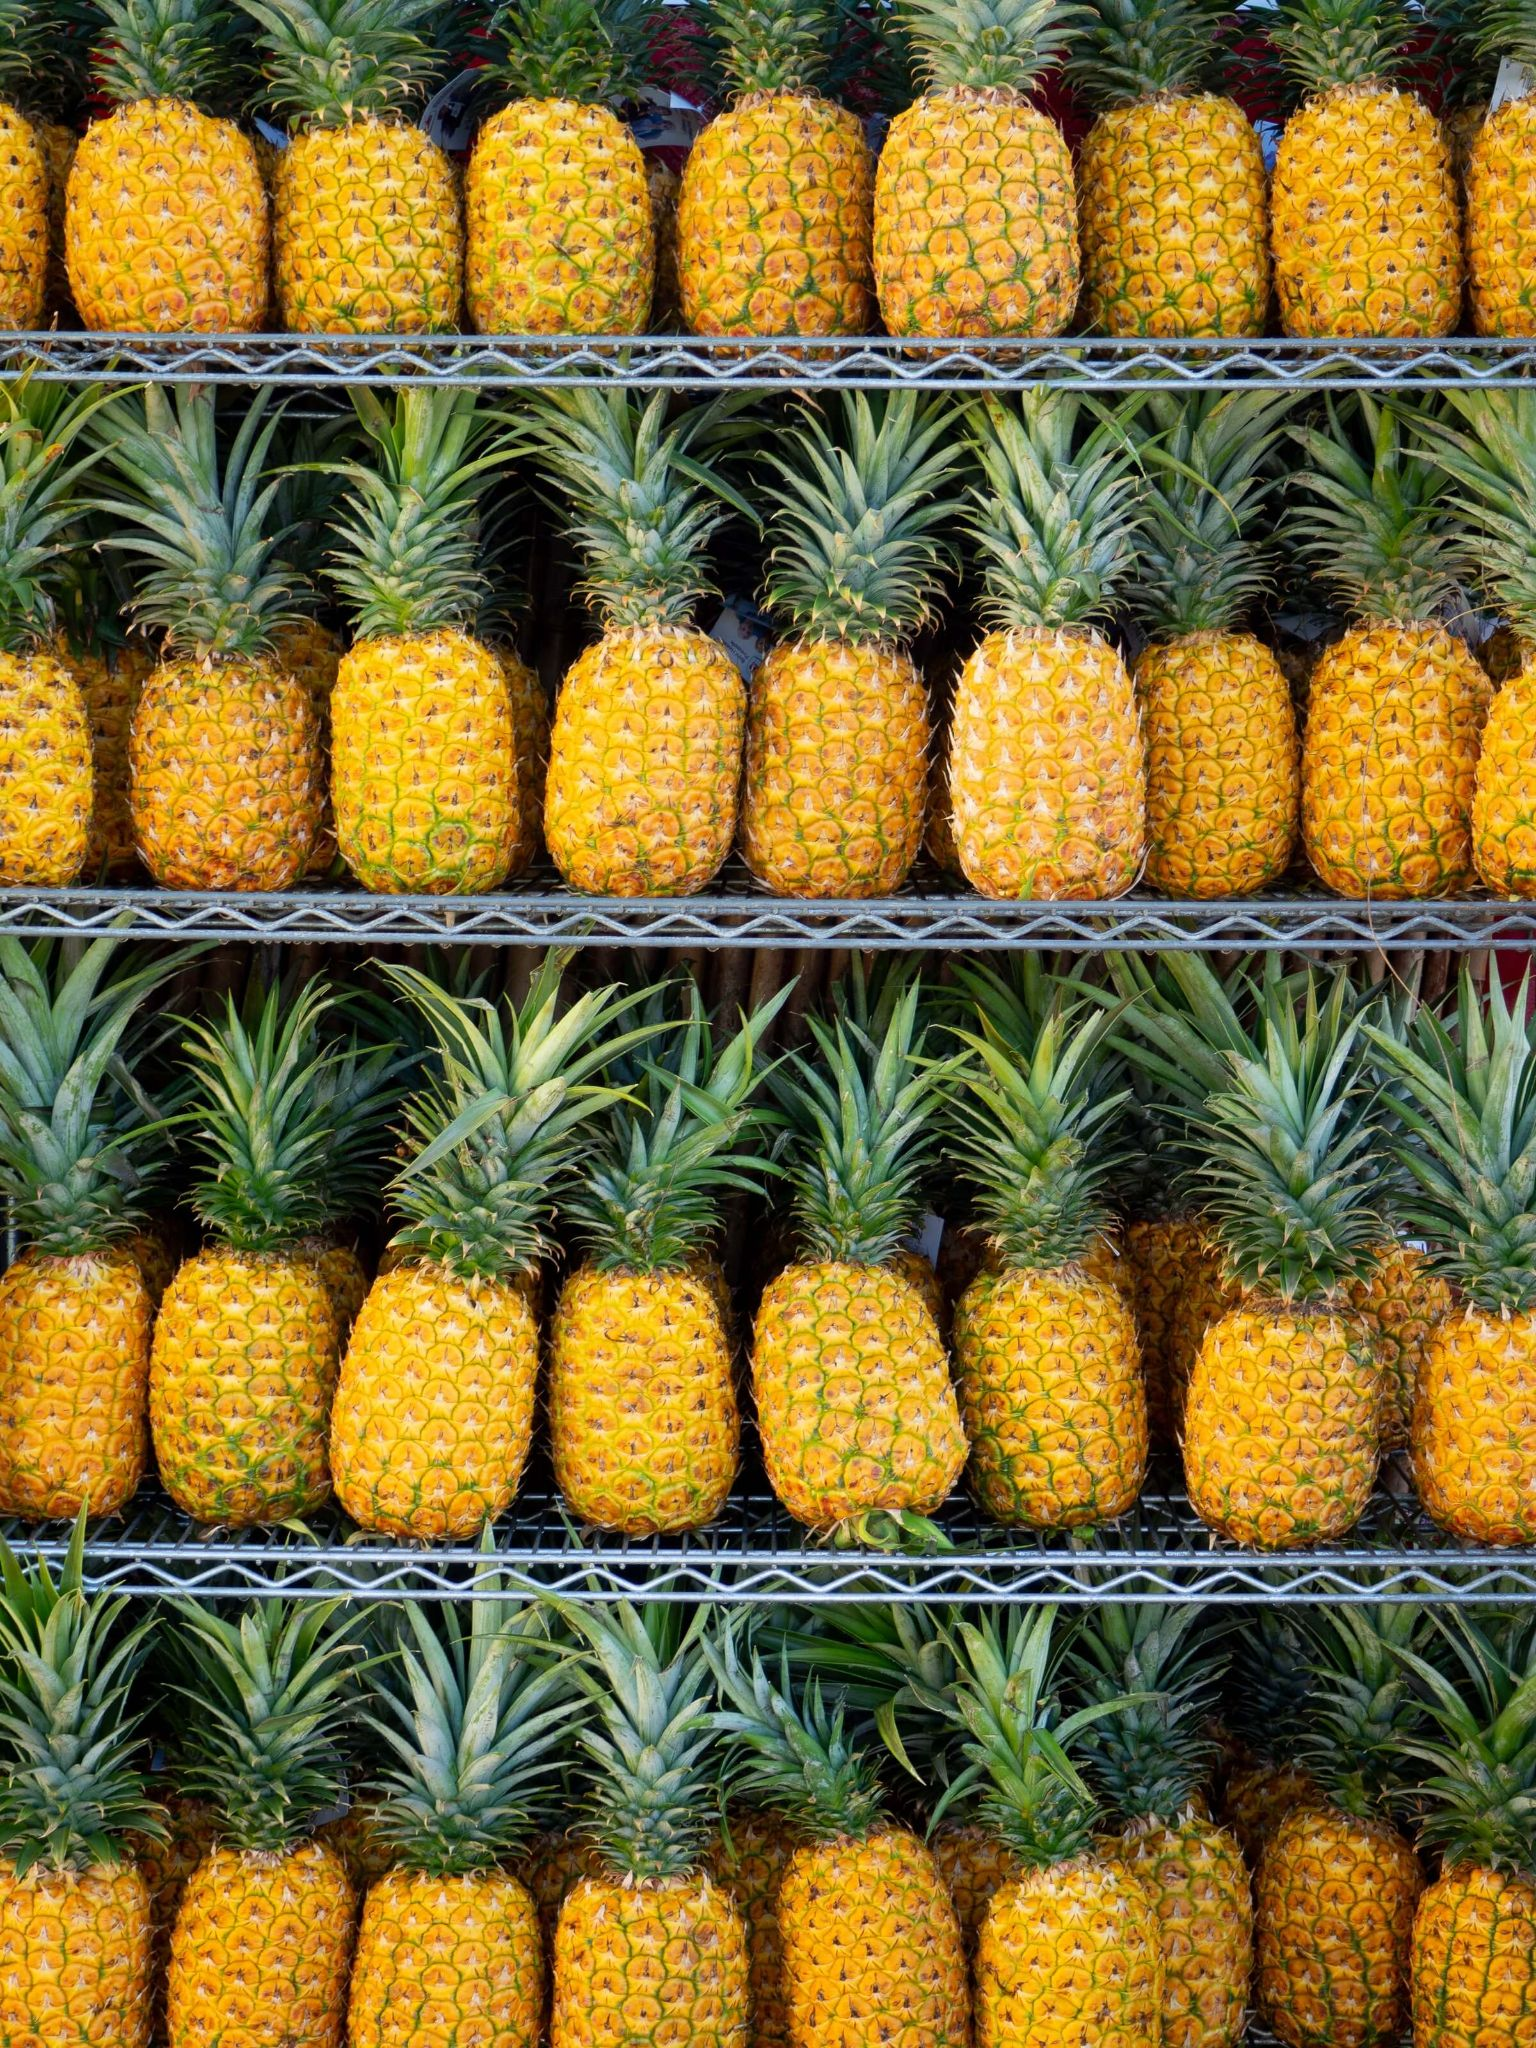 5 days in Oahu itinerary, dole plantation oahu, pineapple display